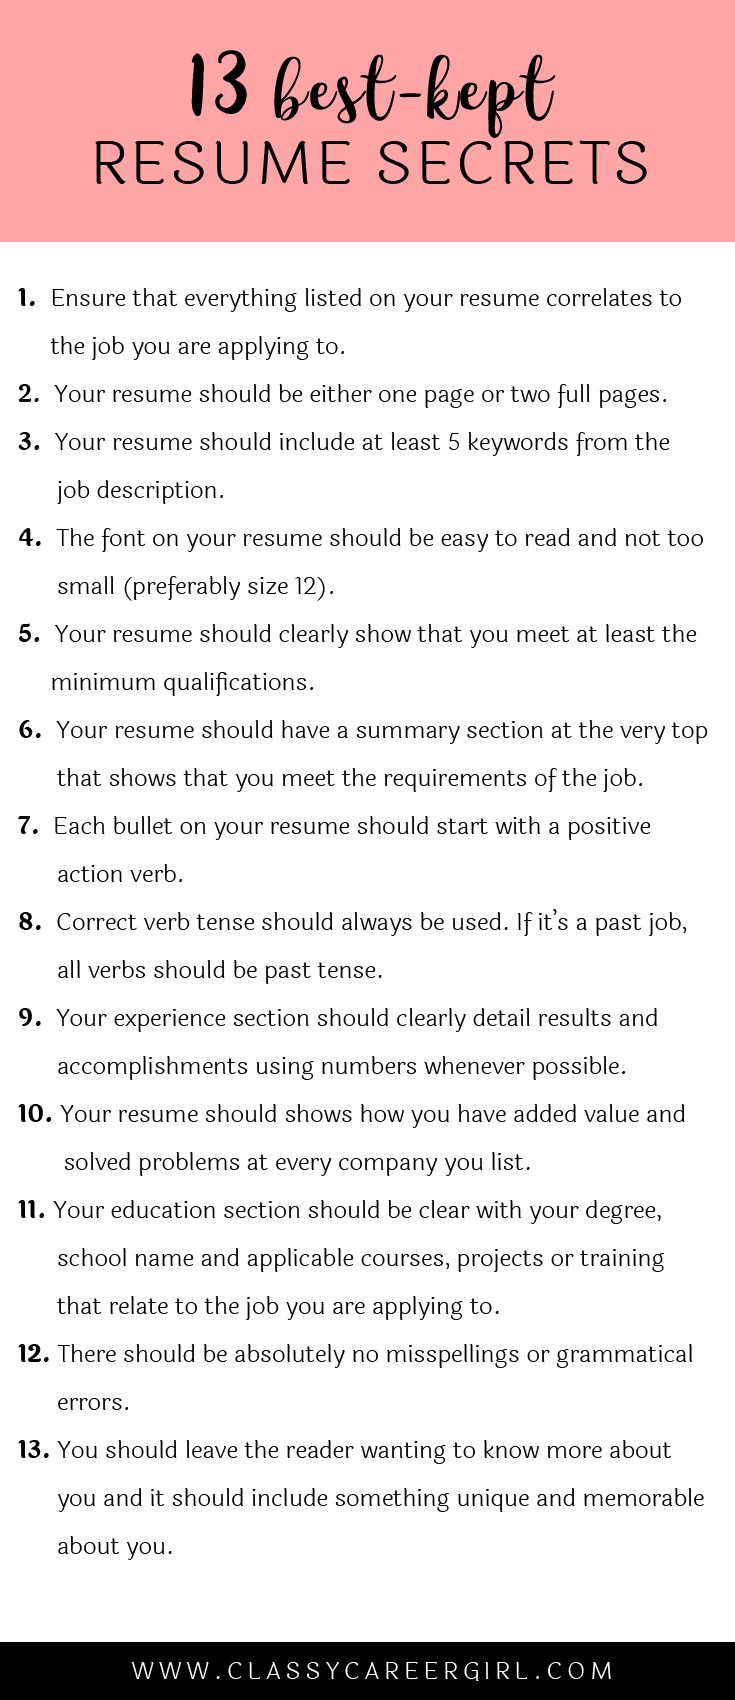 Opposenewapstandardsus  Gorgeous  Ideas About Resume On Pinterest  Cv Format Resume Cv And  With Hot Some Hiring Managers Will Toss Your Resume Out If You Dont Know These  With Divine Hvac Technician Resume Also Lpn Resume Skills In Addition It Resume Templates And Career Change Resume Sample As Well As Strong Resume Examples Additionally Marketing Resume Skills From Pinterestcom With Opposenewapstandardsus  Hot  Ideas About Resume On Pinterest  Cv Format Resume Cv And  With Divine Some Hiring Managers Will Toss Your Resume Out If You Dont Know These  And Gorgeous Hvac Technician Resume Also Lpn Resume Skills In Addition It Resume Templates From Pinterestcom